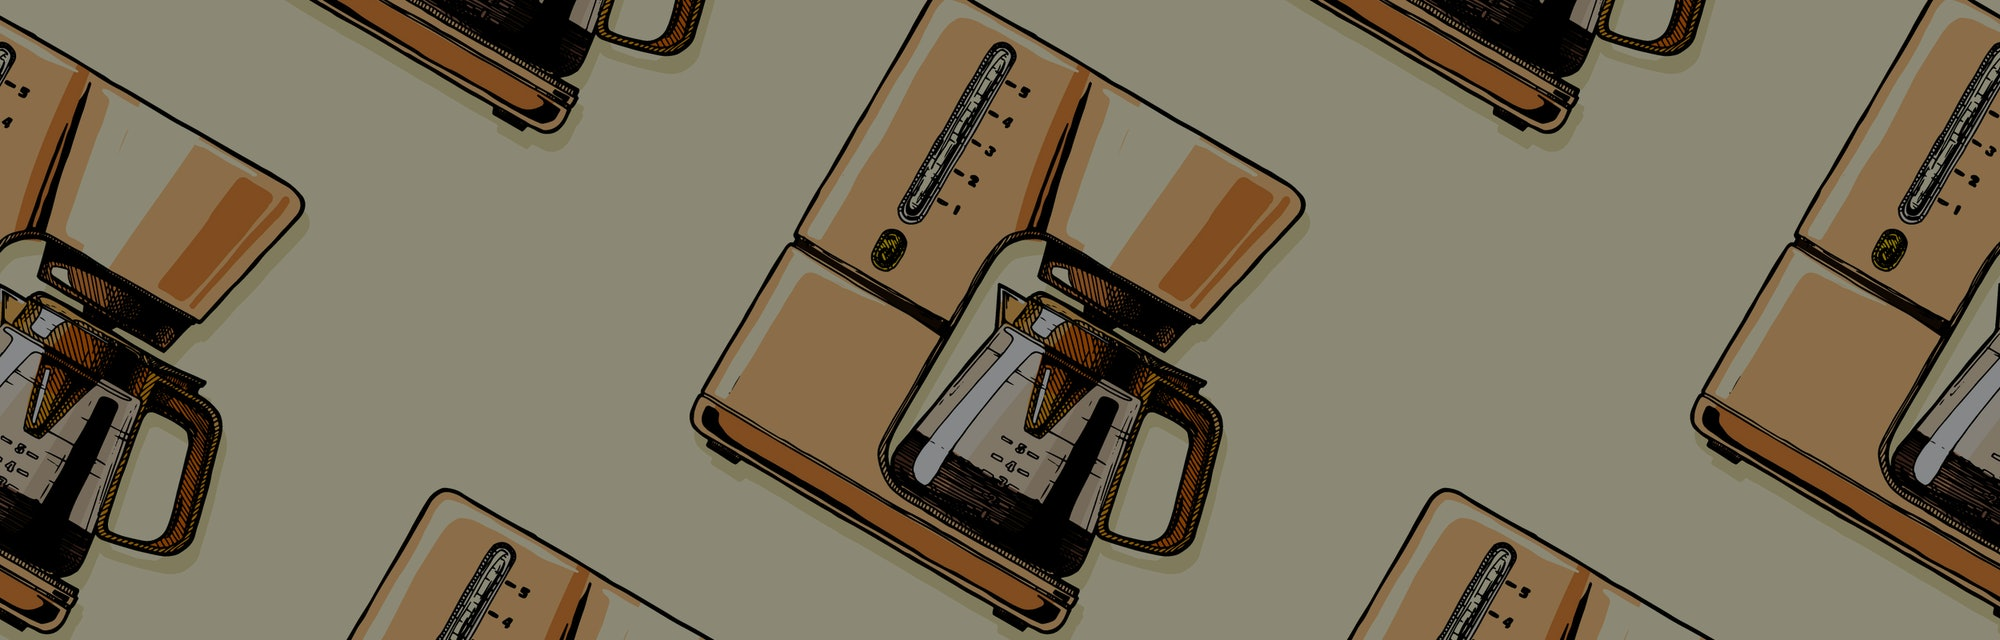 Seamless pattern with coffee machines. Single-cup maker, drip coffeemaker, percolator and espresso machine.